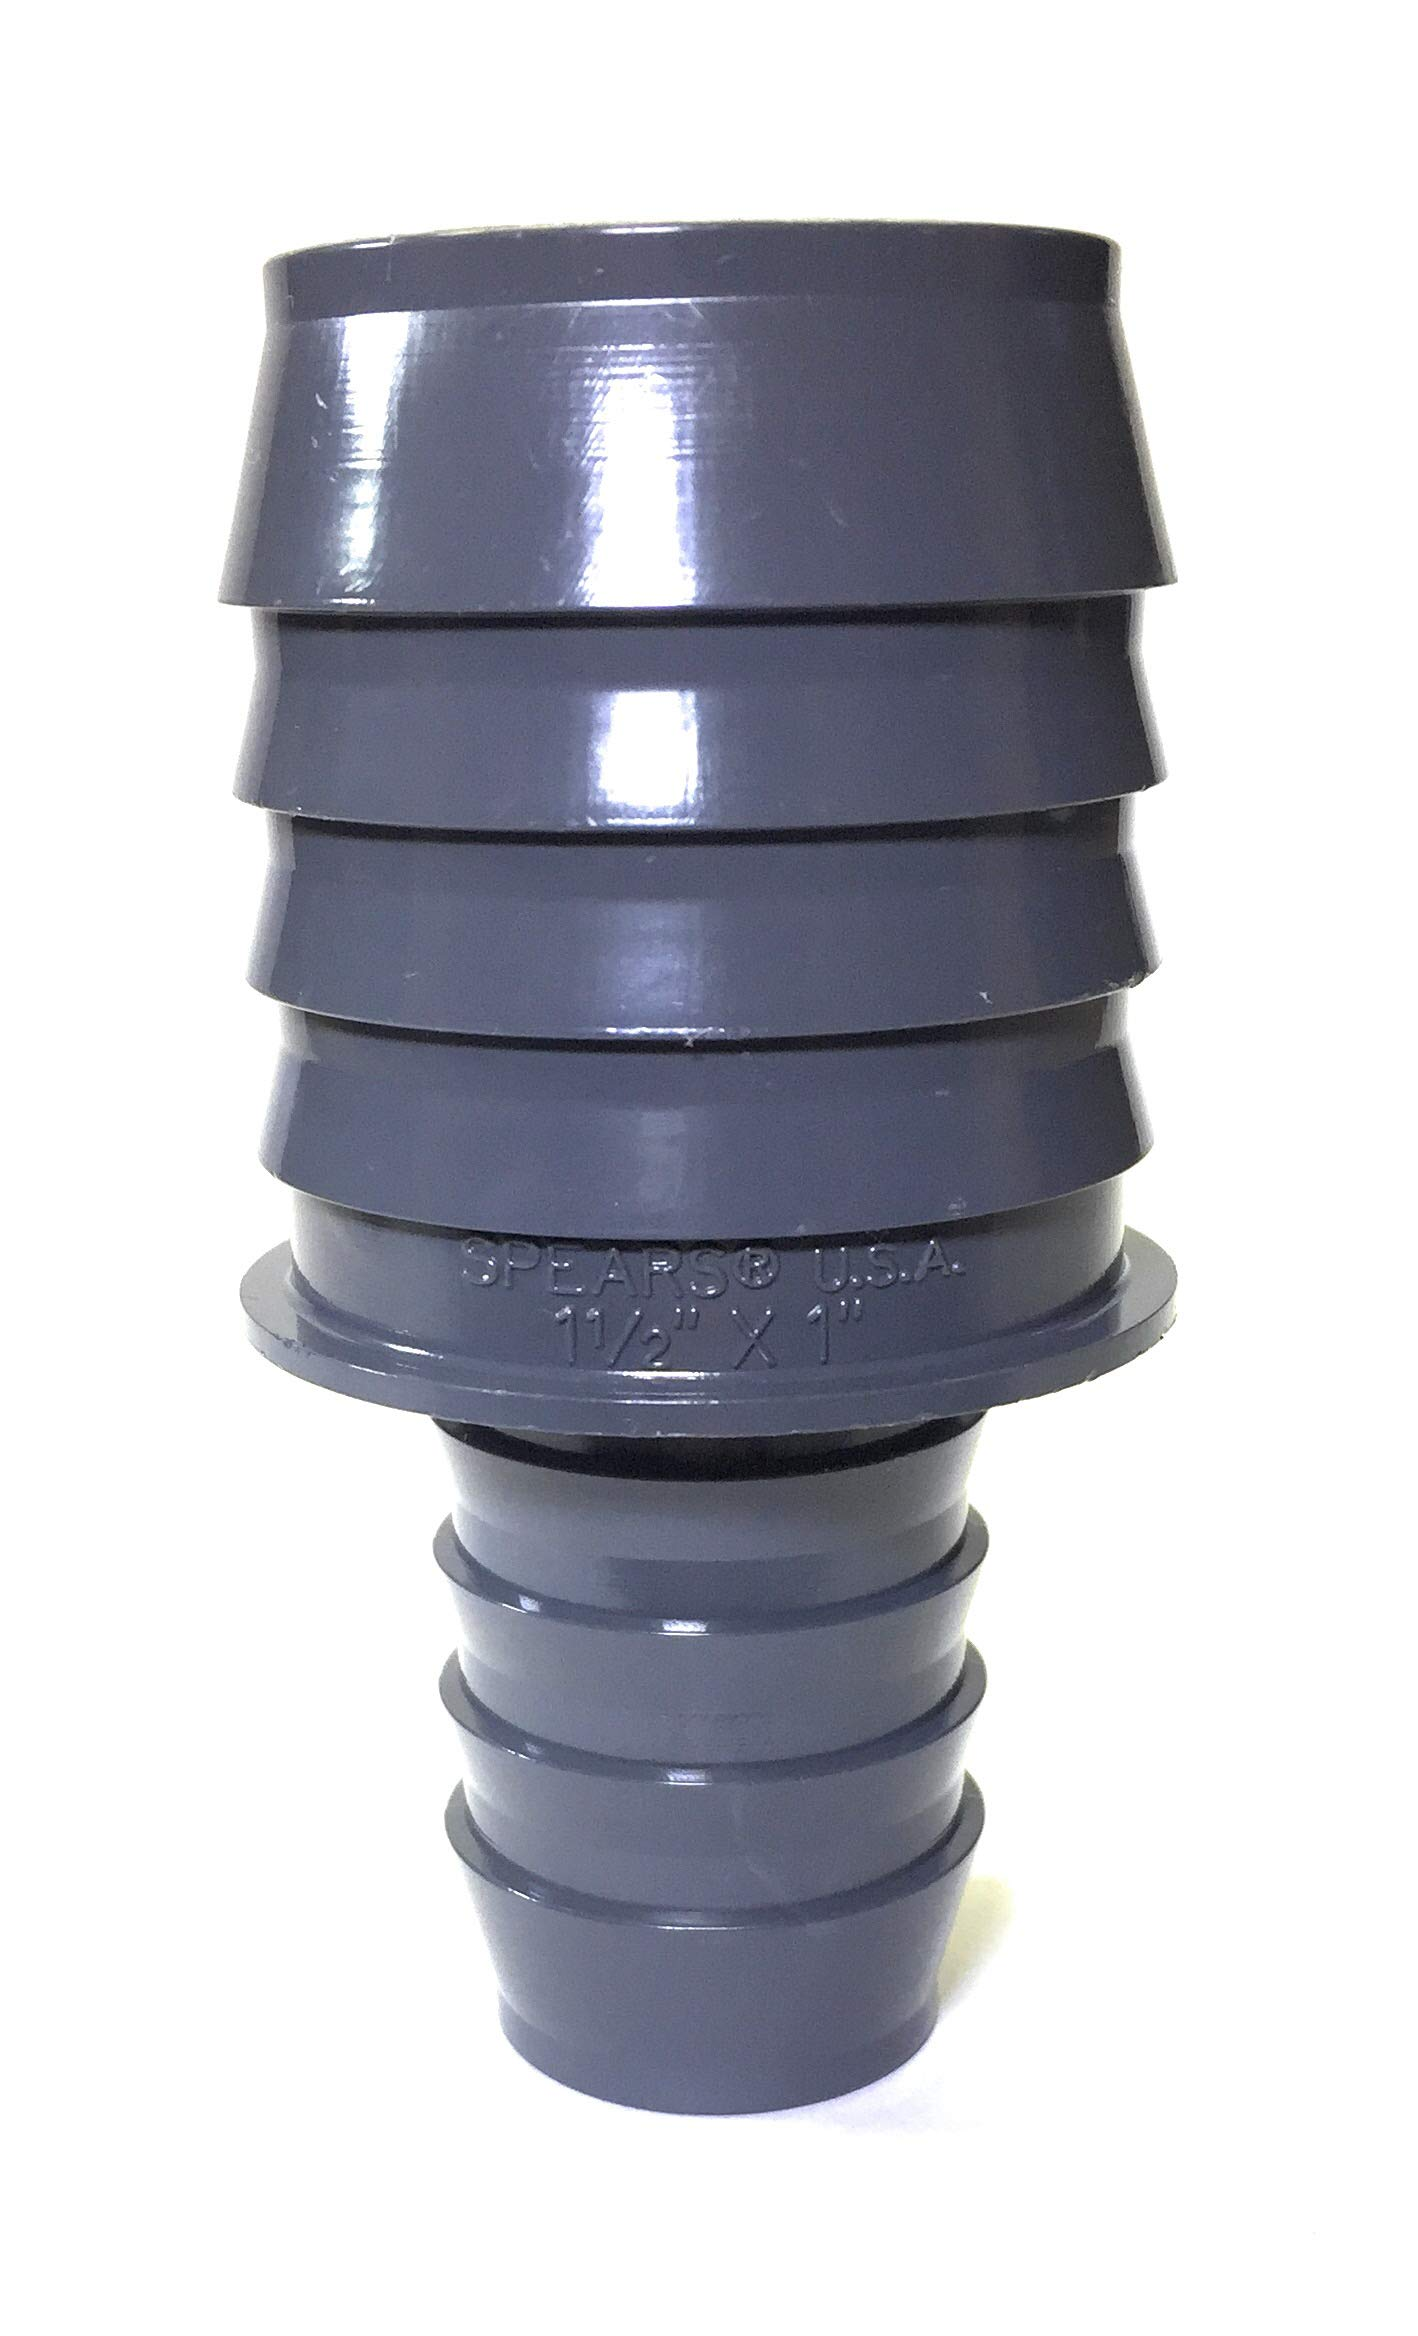 Schedule 40 Spears 1429 Series PVC Tube Fitting Coupling Gray 1 Barbed-New